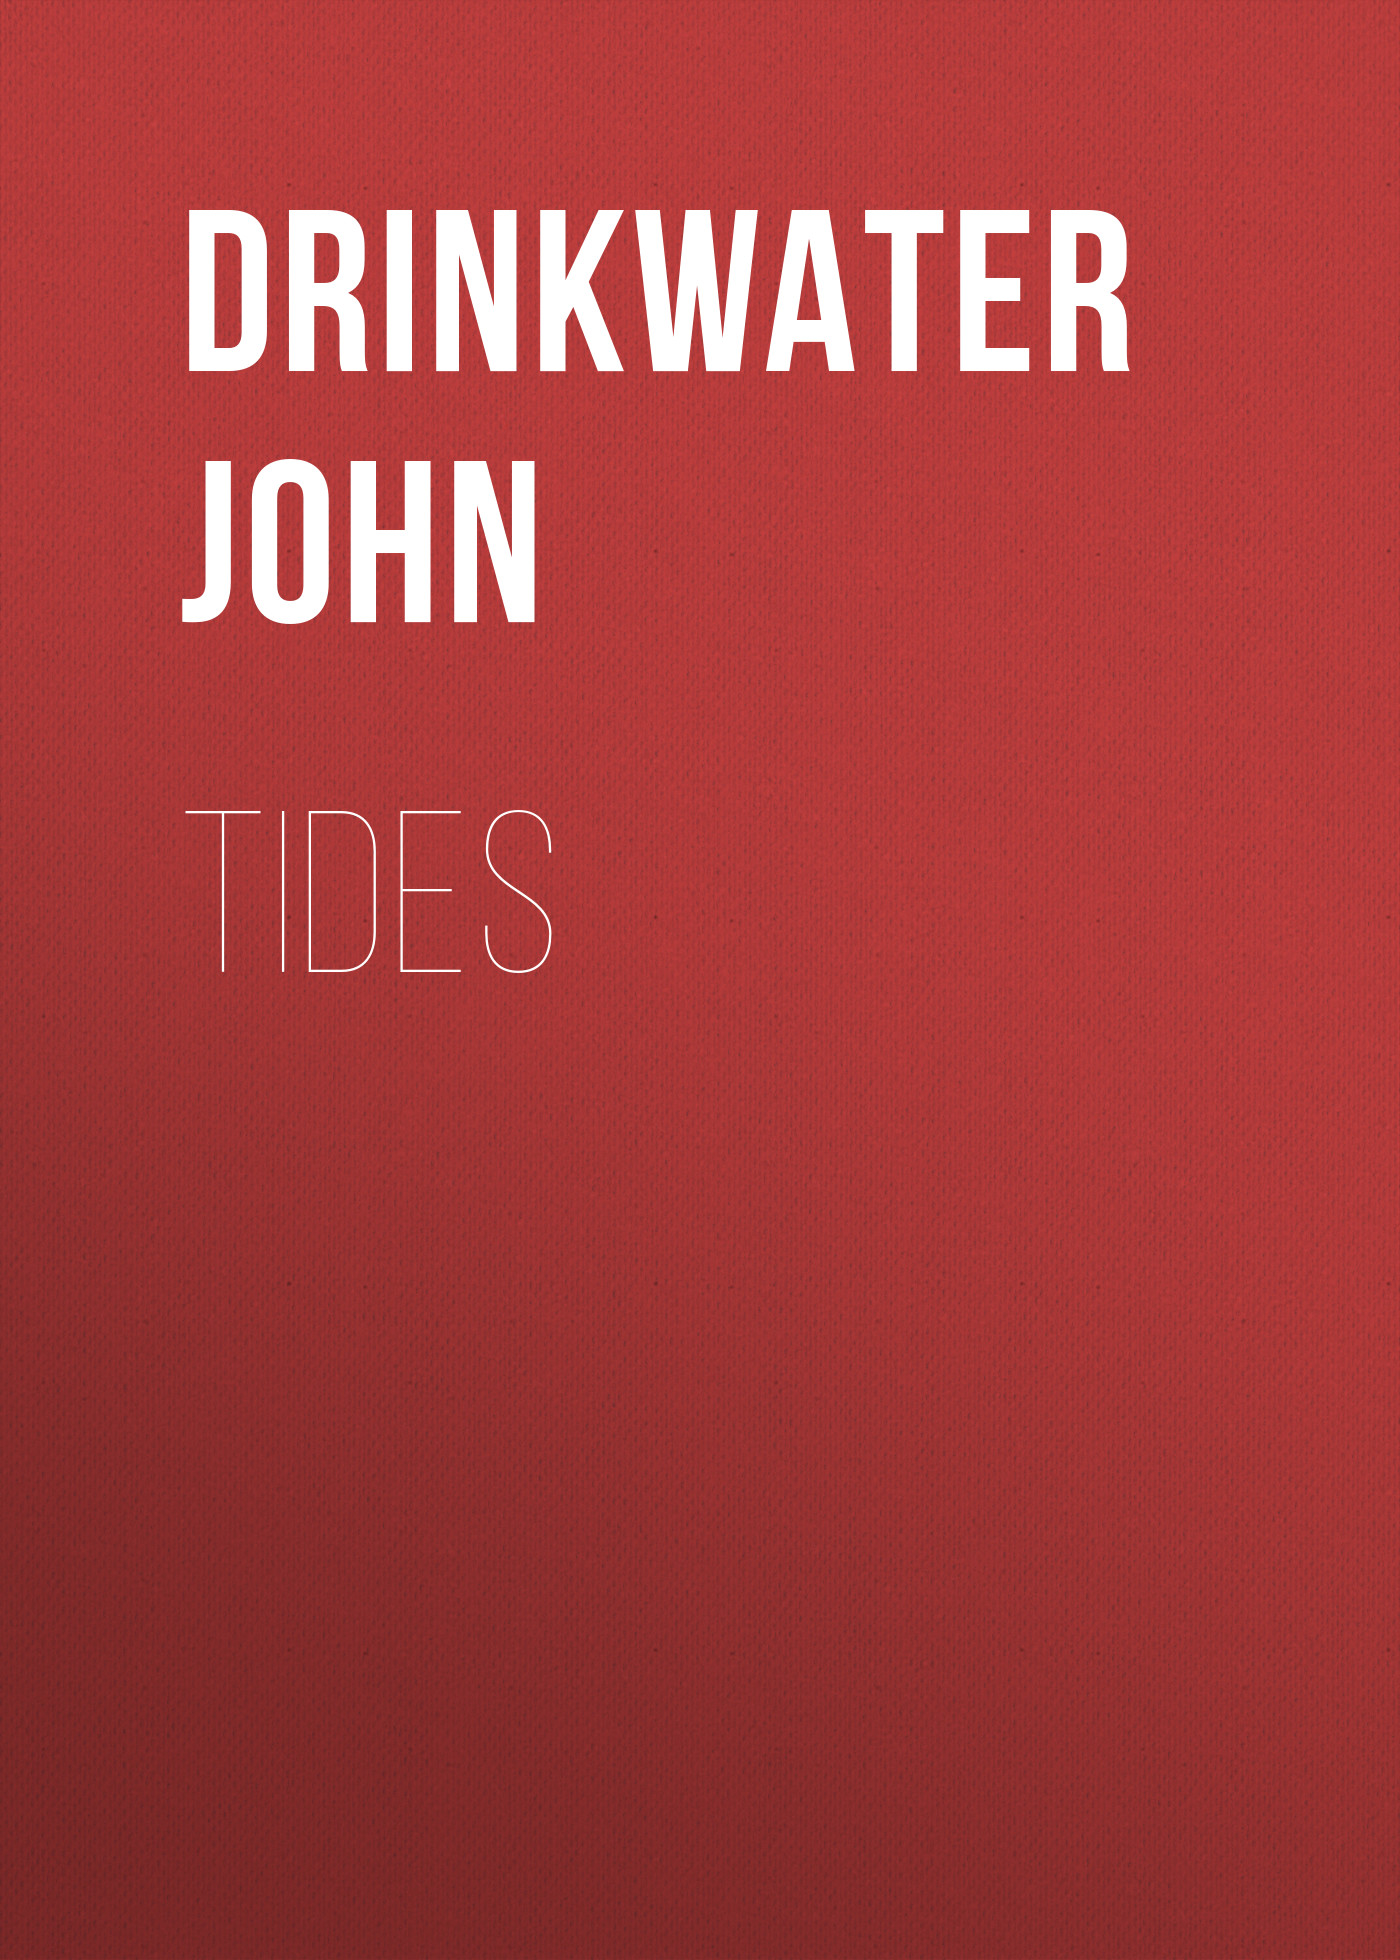 Drinkwater John Tides within the tides